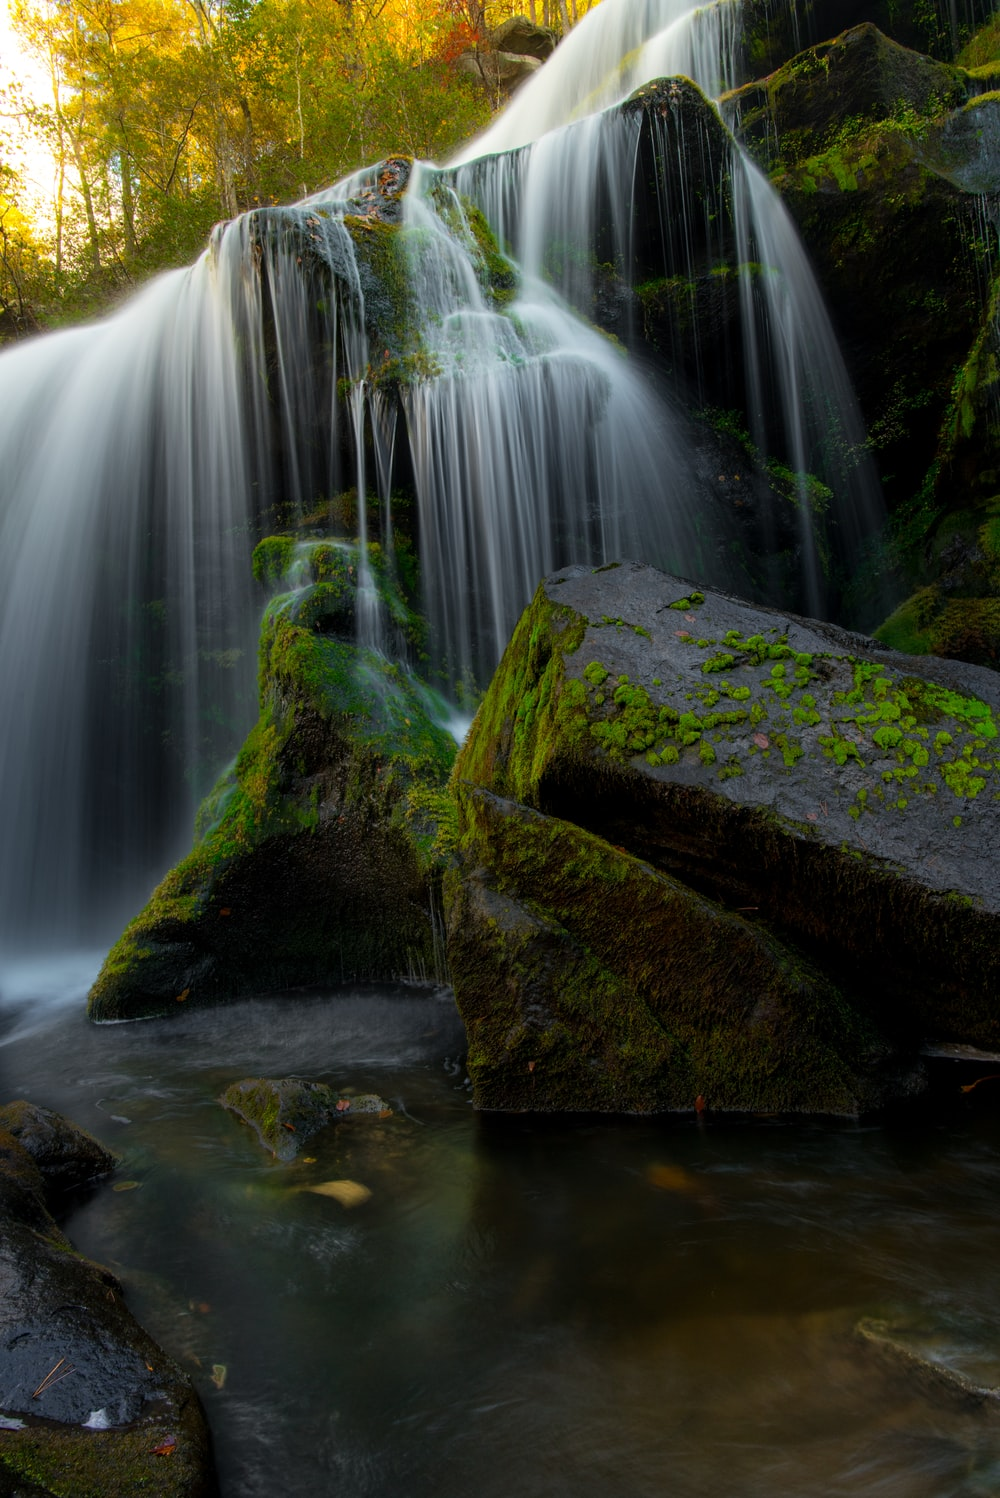 timelapse photography of waterfalls over mossy rock